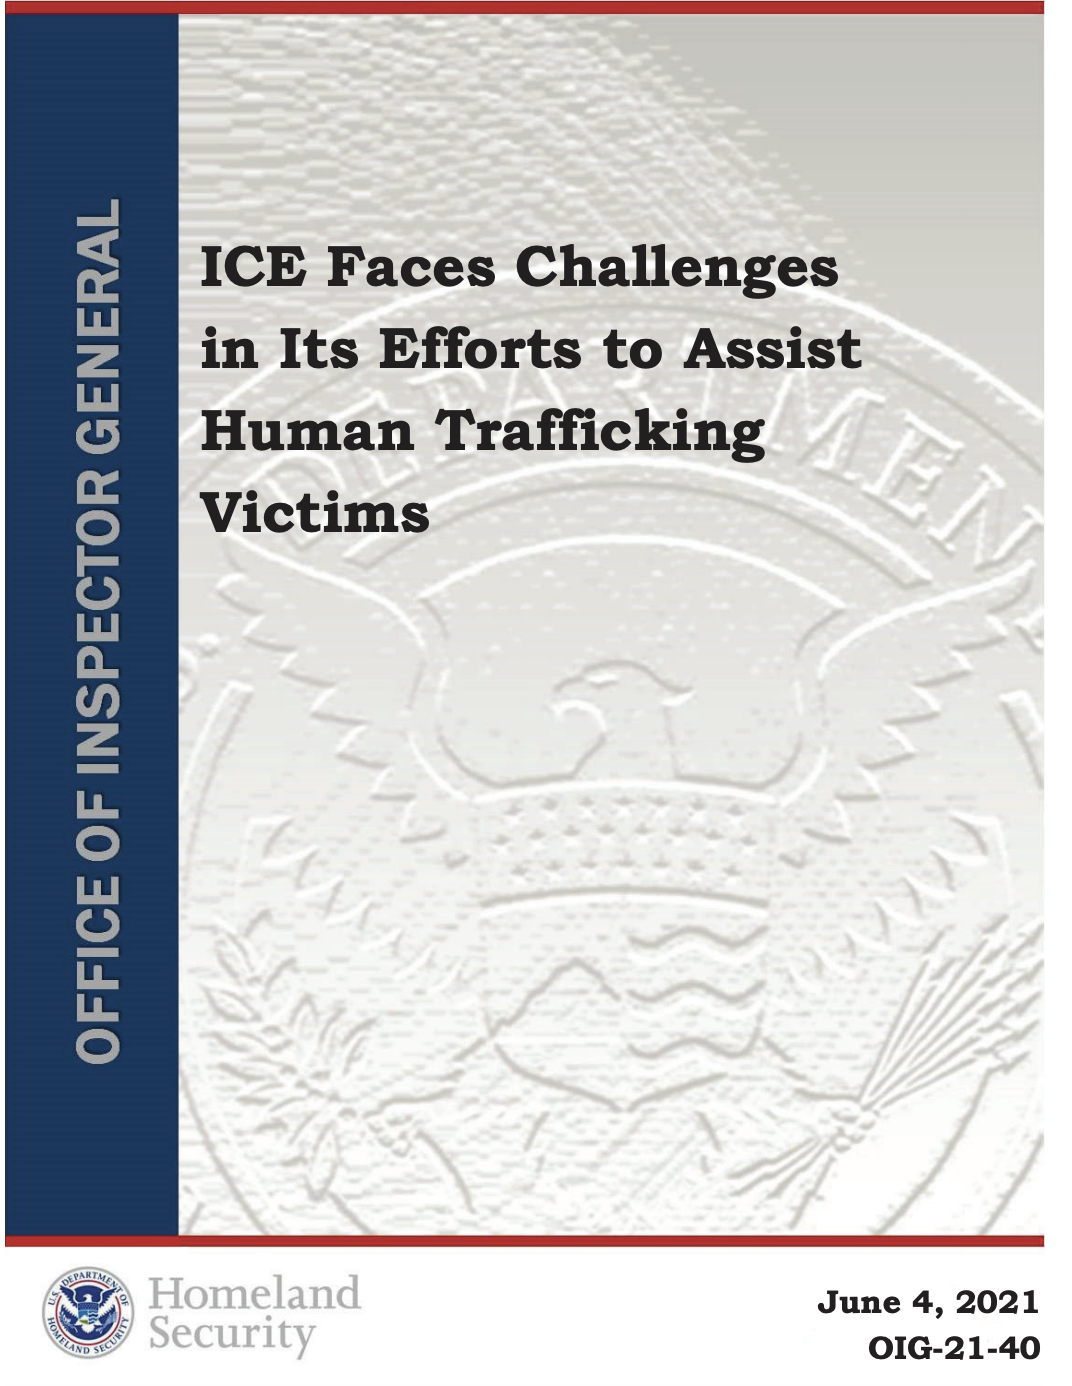 ICE Faces Challenges in Its Efforts to Assist Human Trafficking Victims